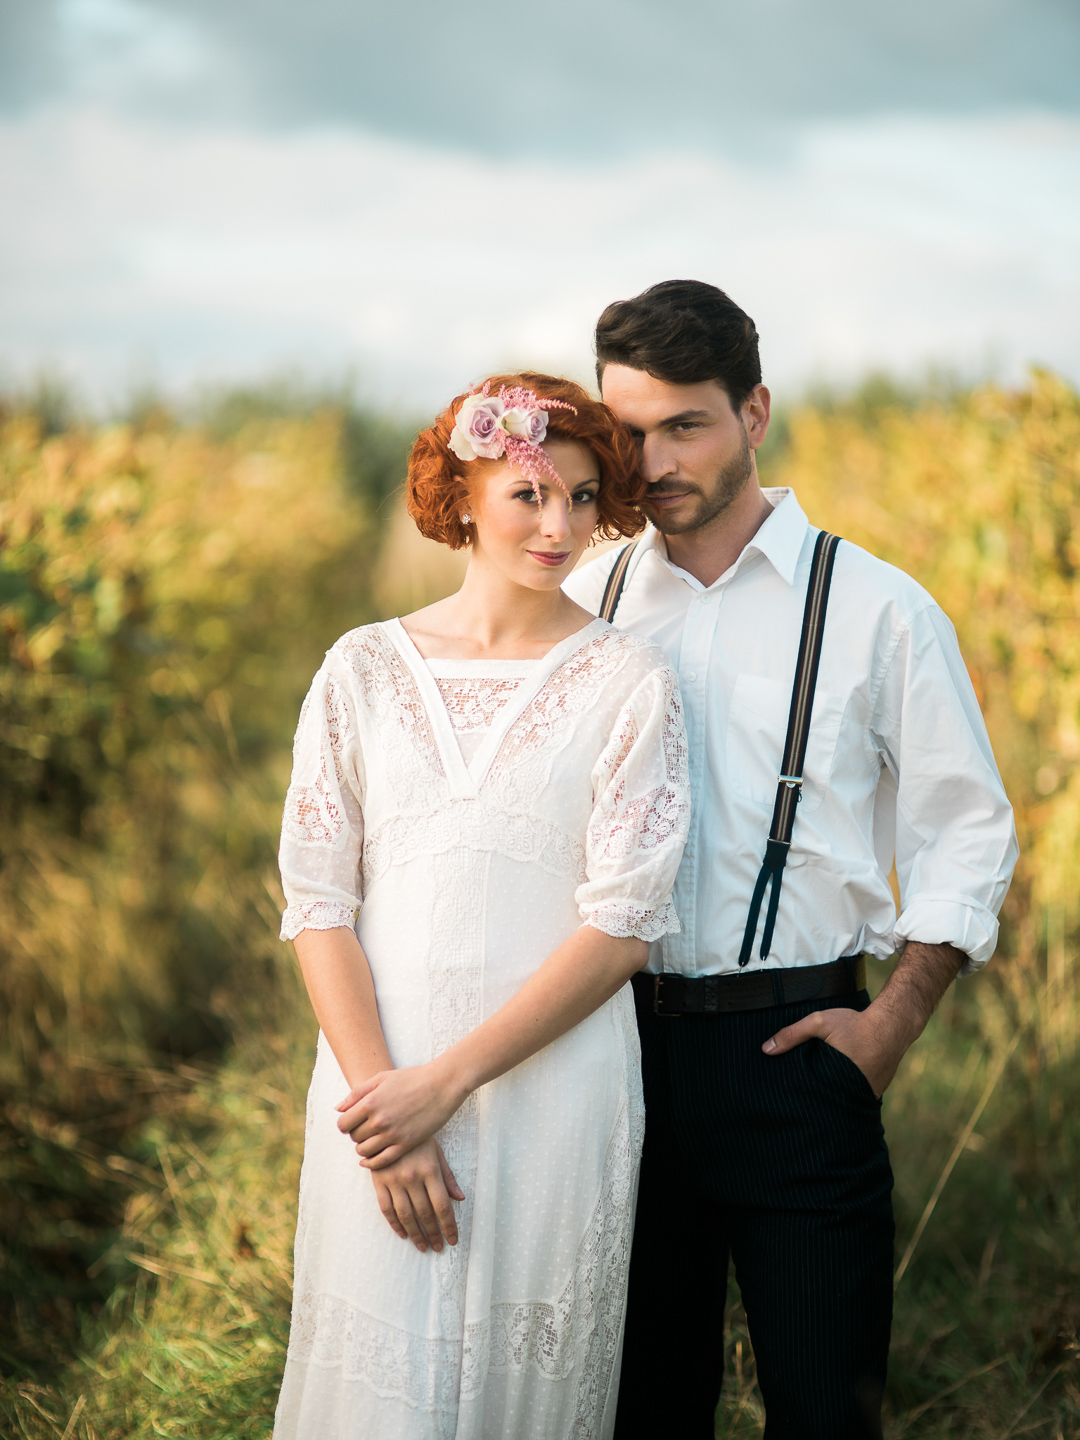 Festival Brides John Barwood Photography Styled Shoot51